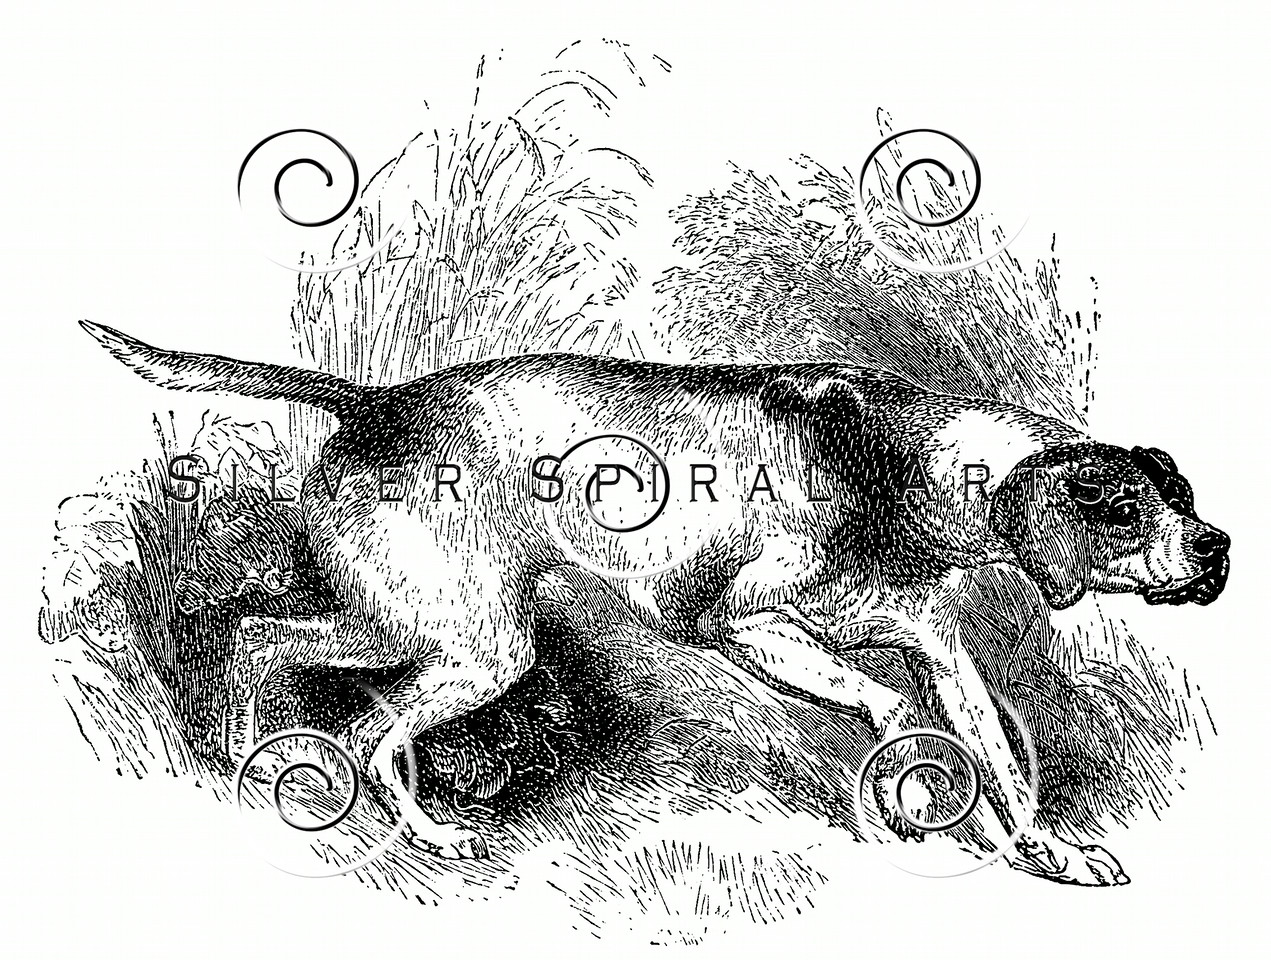 Vintage Pointer Dogs Illustration - 1800s Dog Images